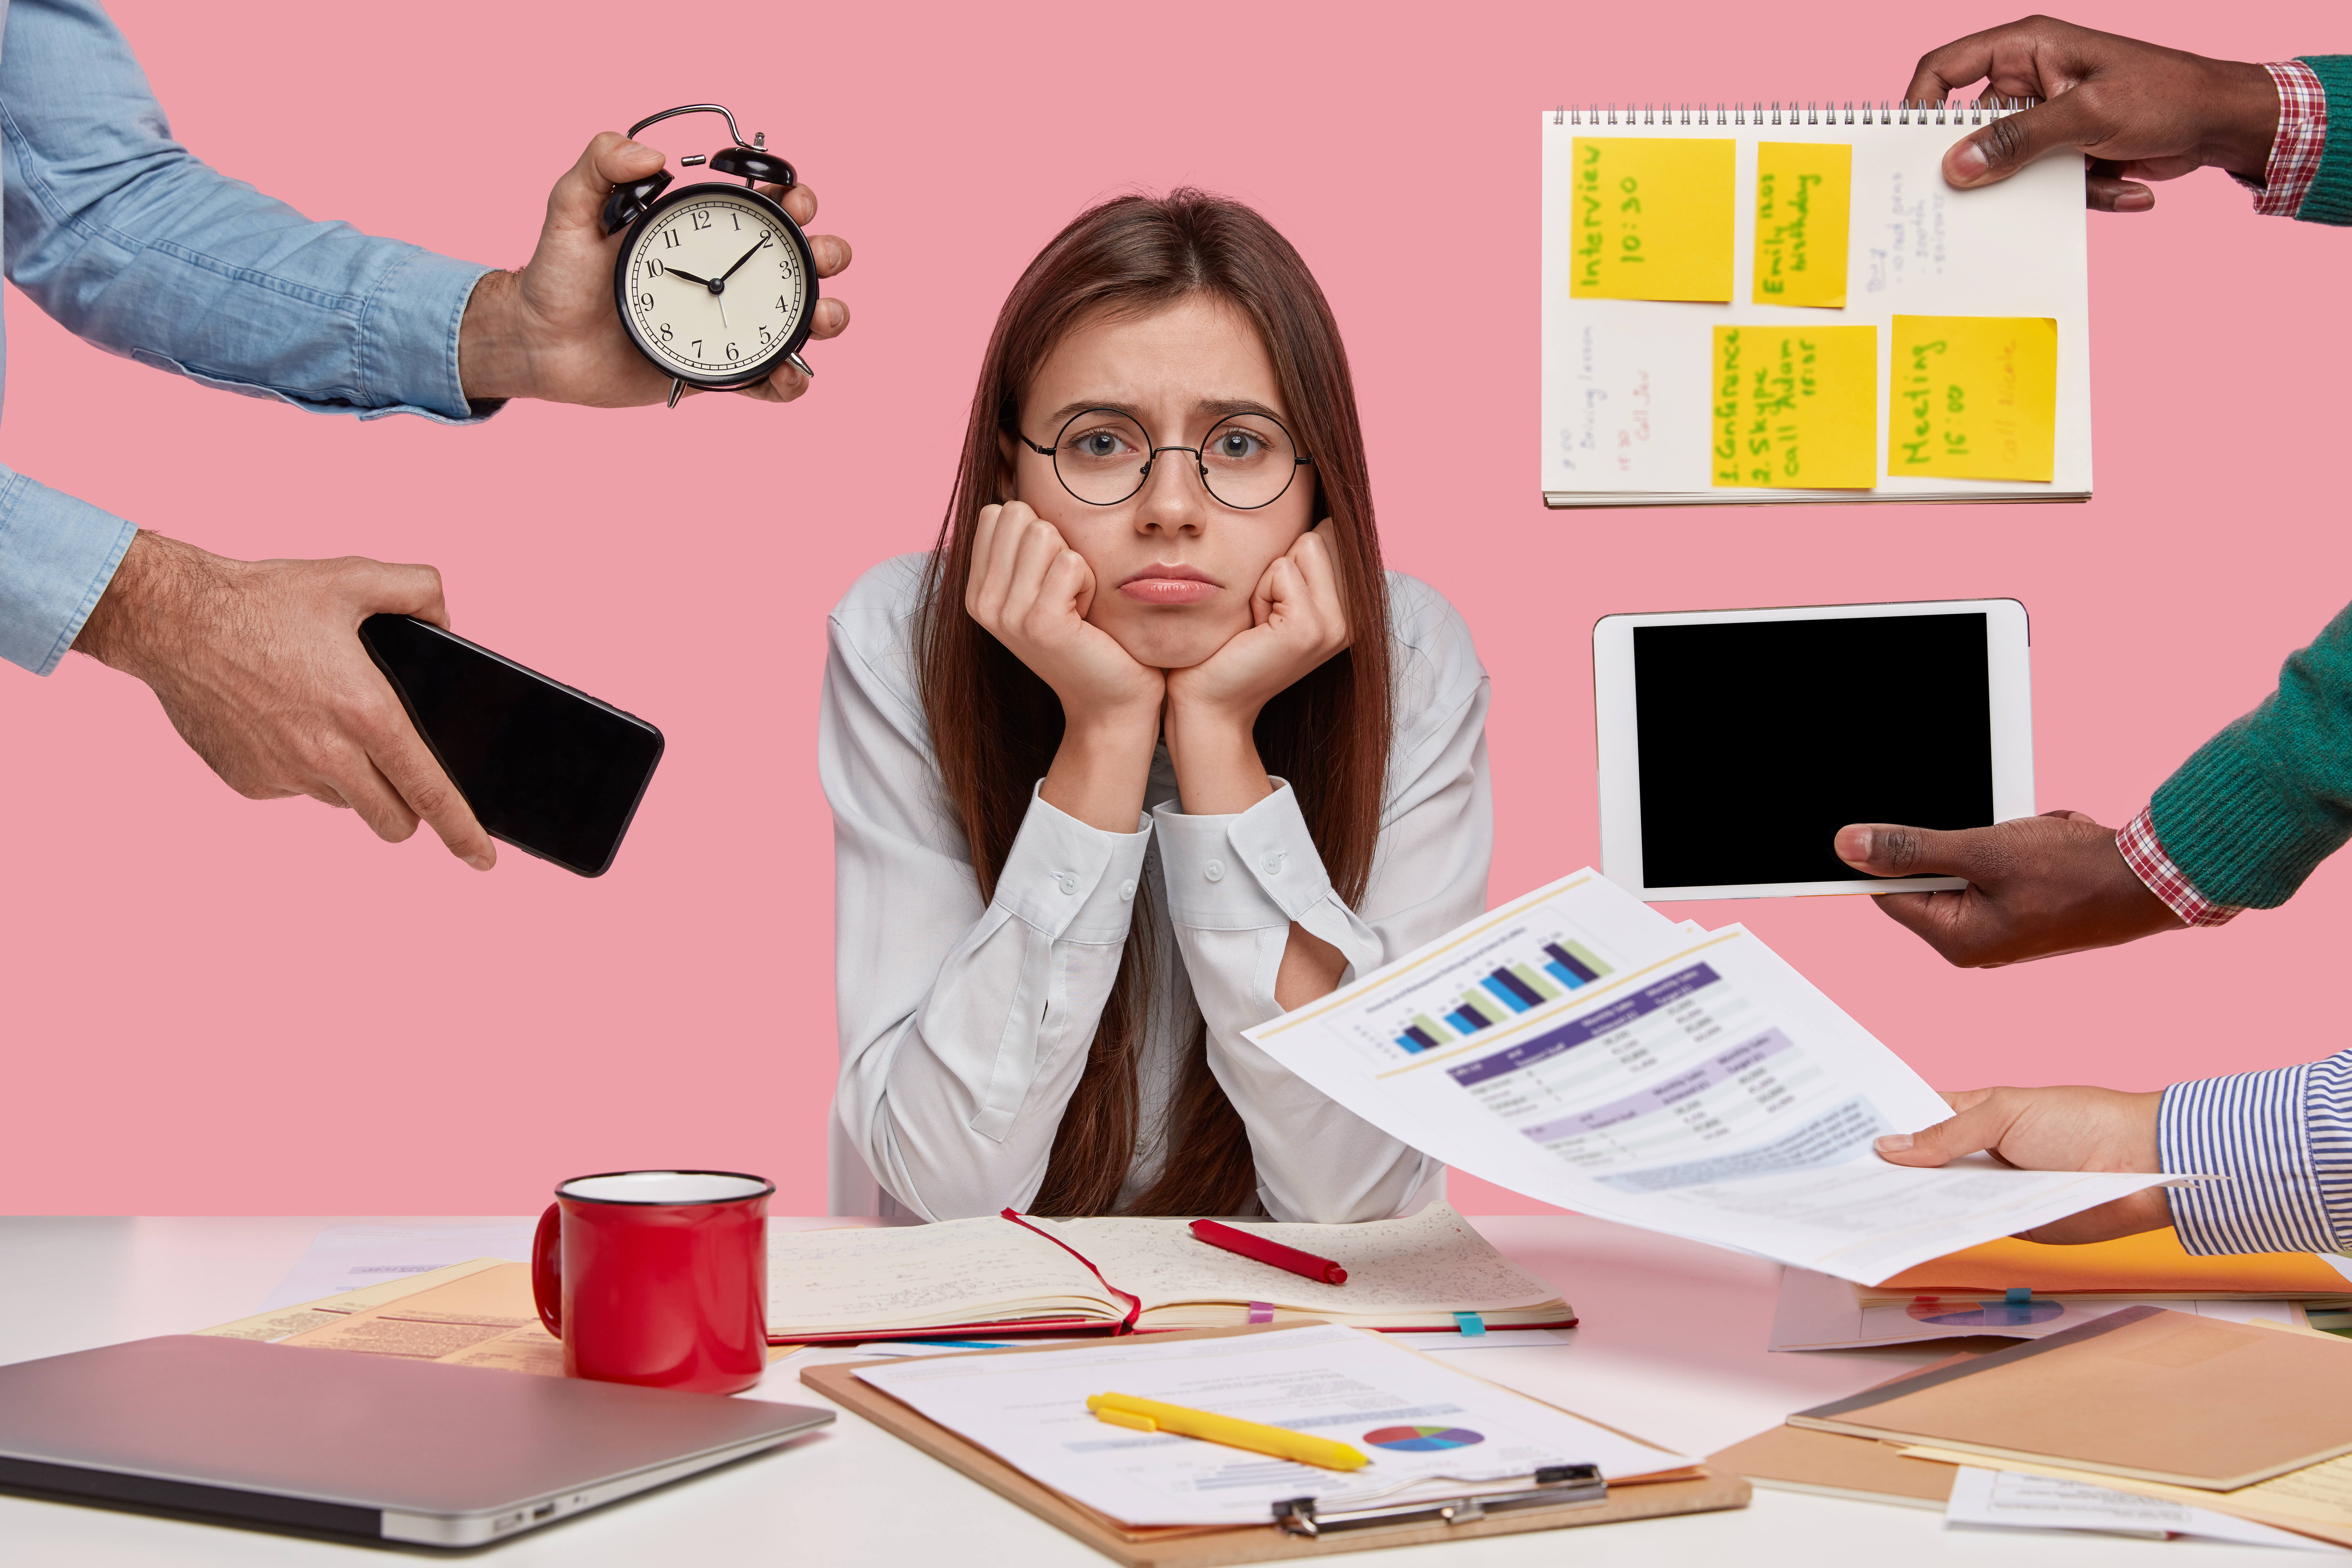 personal energy management is useful for overcoming fatigue and low motivation